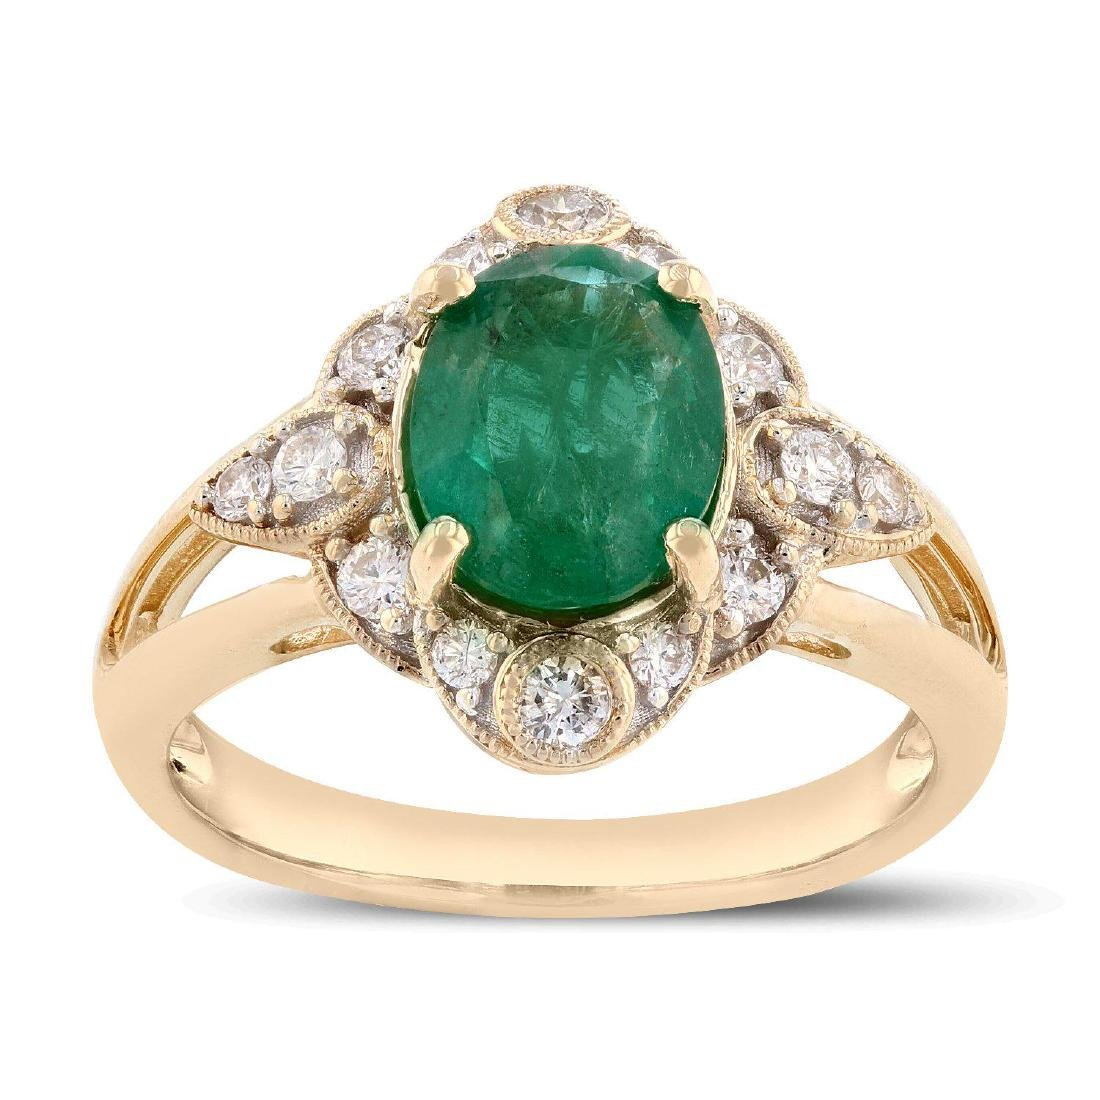 1.68ct Emerald and 0.33ctw Diamond 14K Yellow Gold Ring